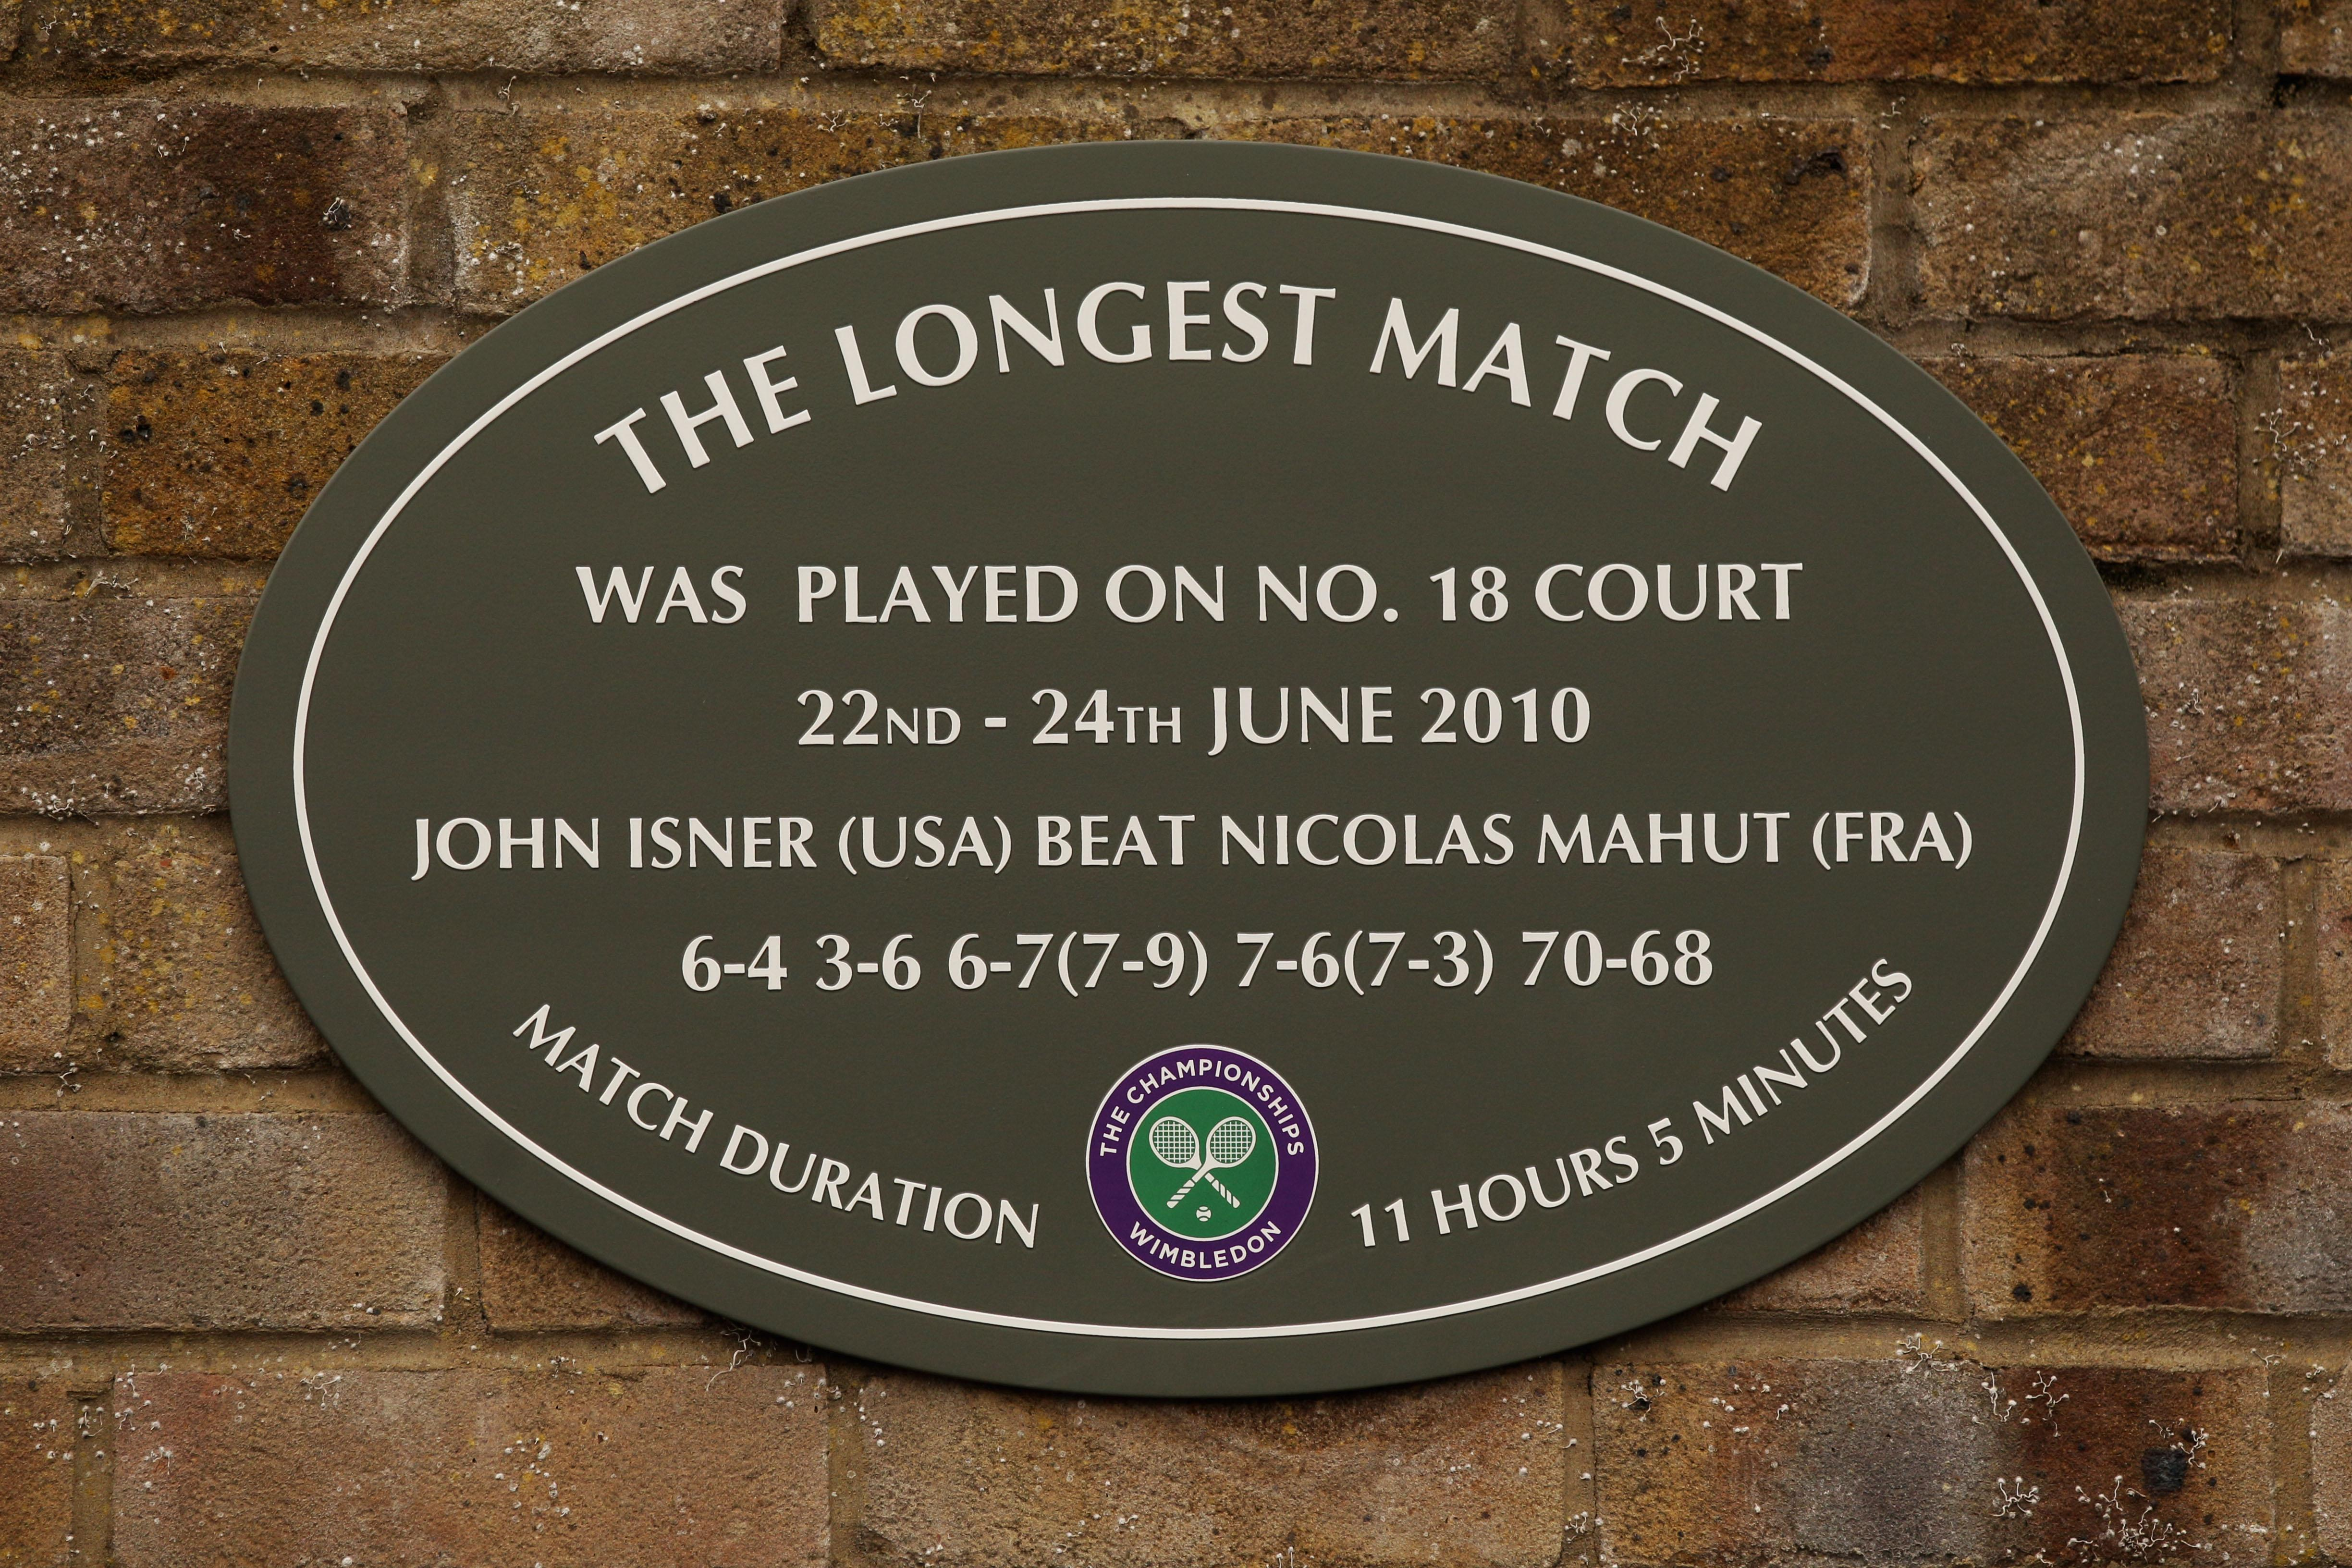 A plaque commemorating Isner and Mahut's match was put up at the All England Club